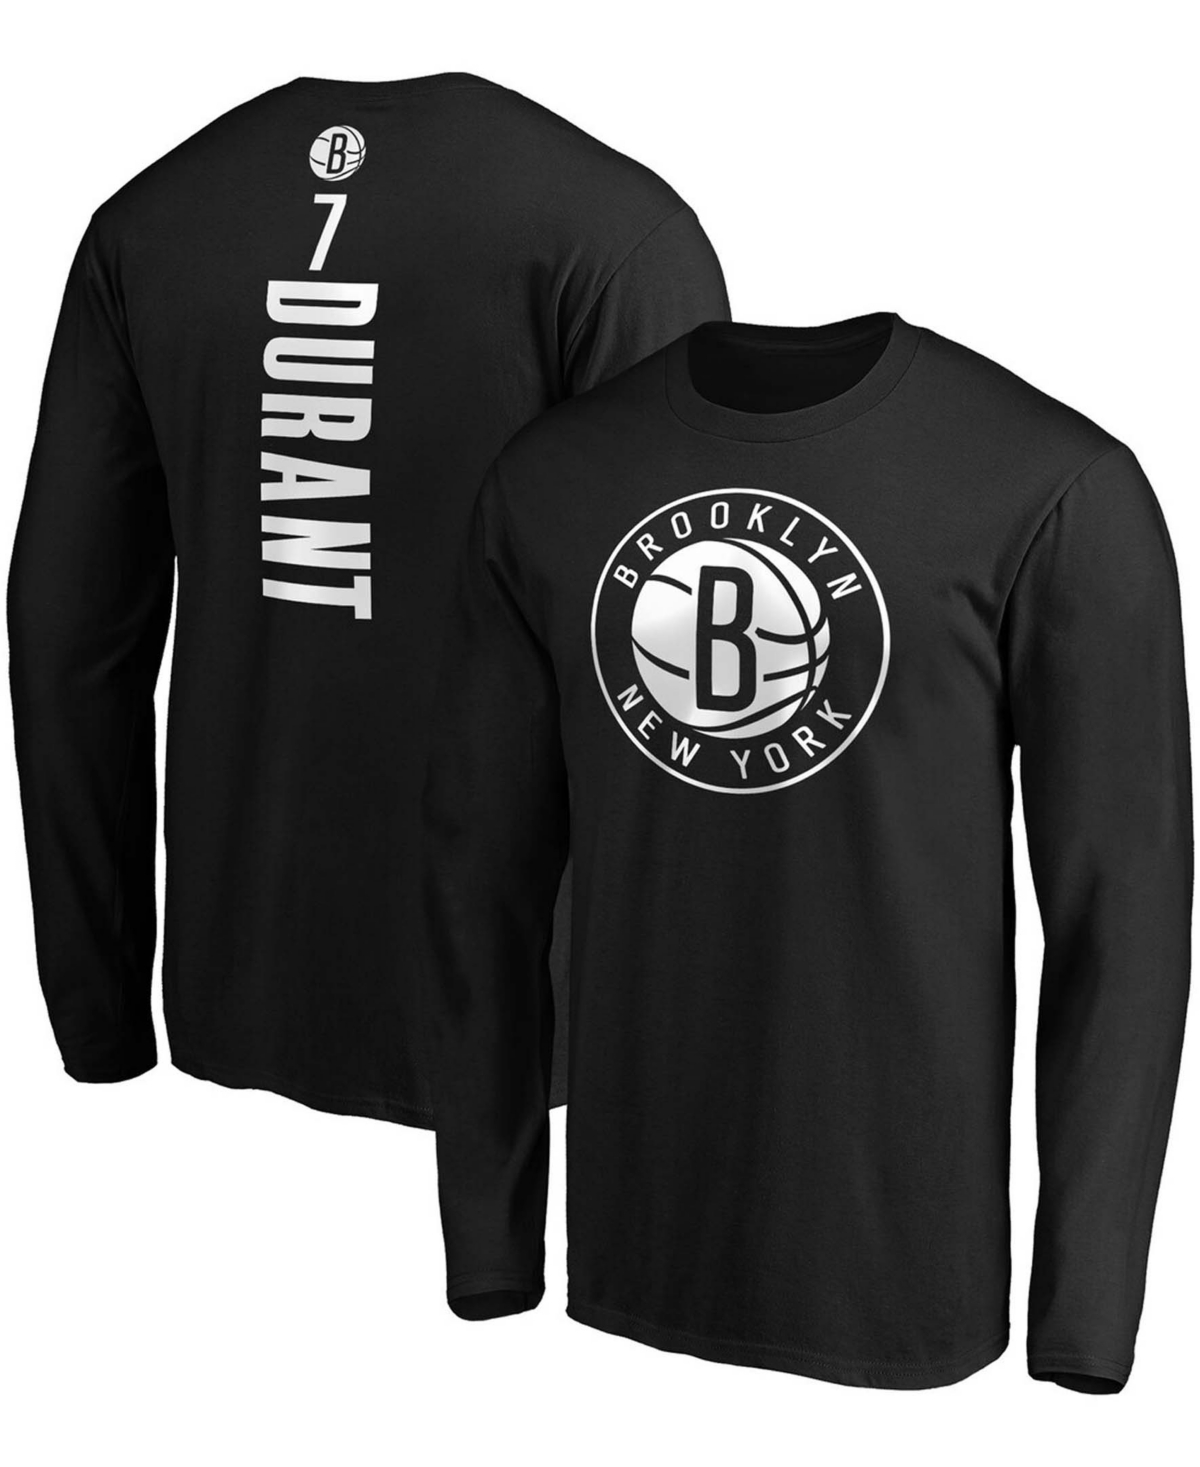 Men's Kevin Durant Black Brooklyn Nets Team Playmaker Name and Number Long Sleeve T-shirt